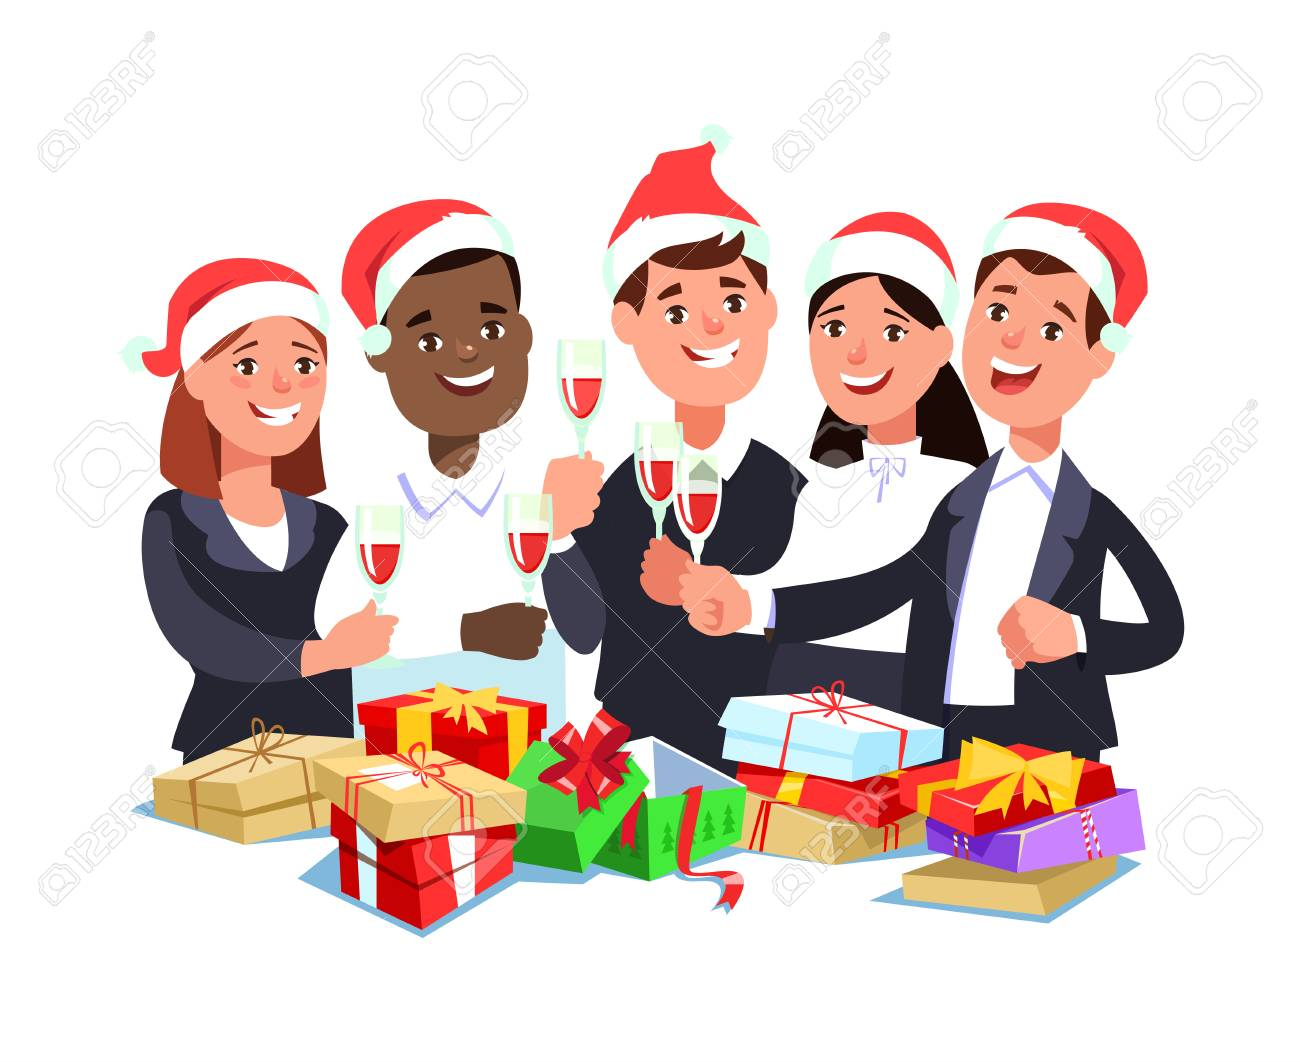 Office Christmas Party Clipart 90928 | USBDATA